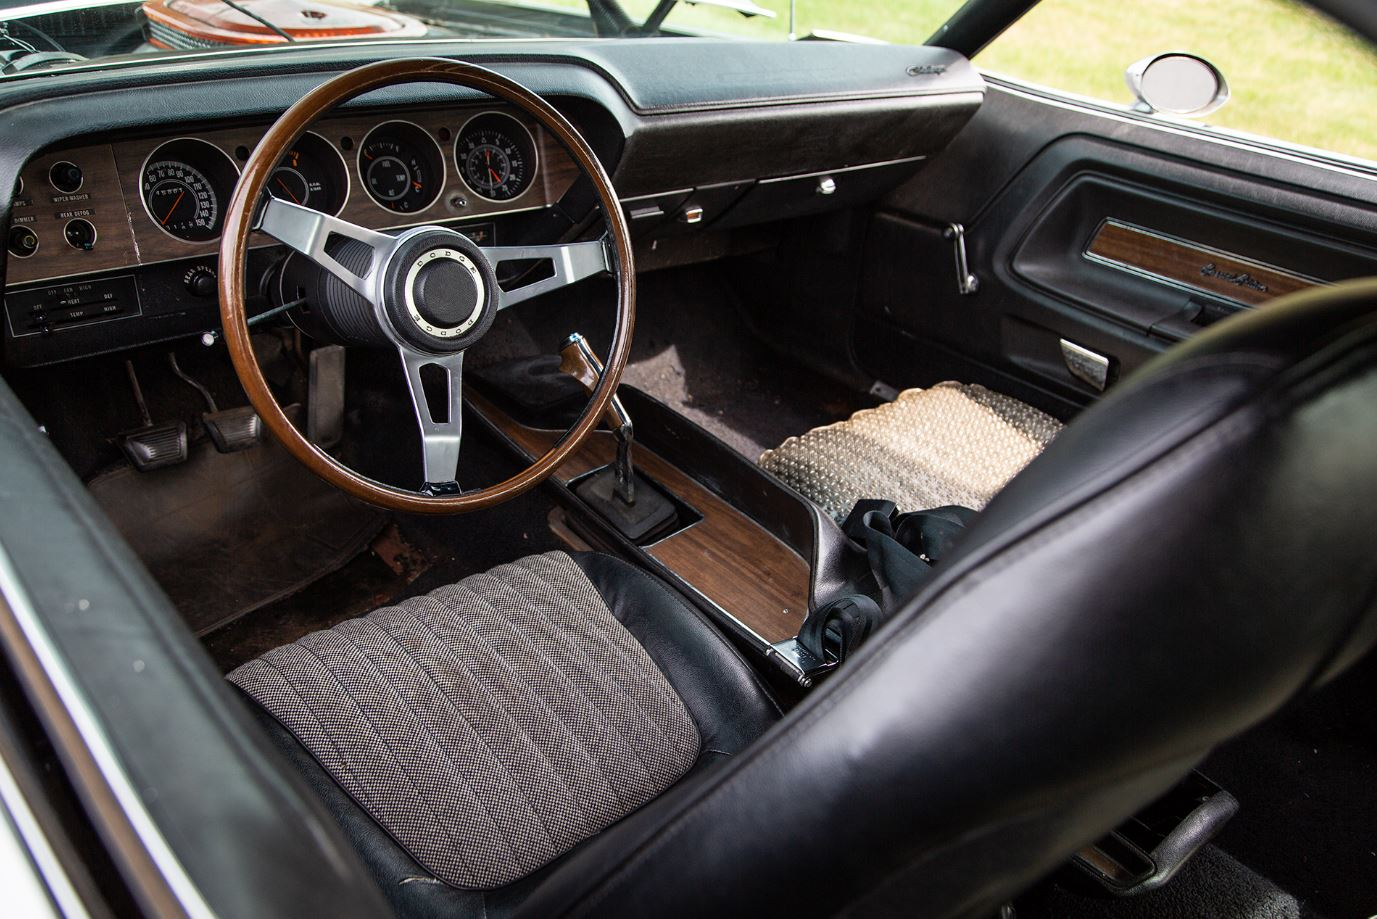 HVA - 1970 Dodge Challenger - Driving Experience - Interior